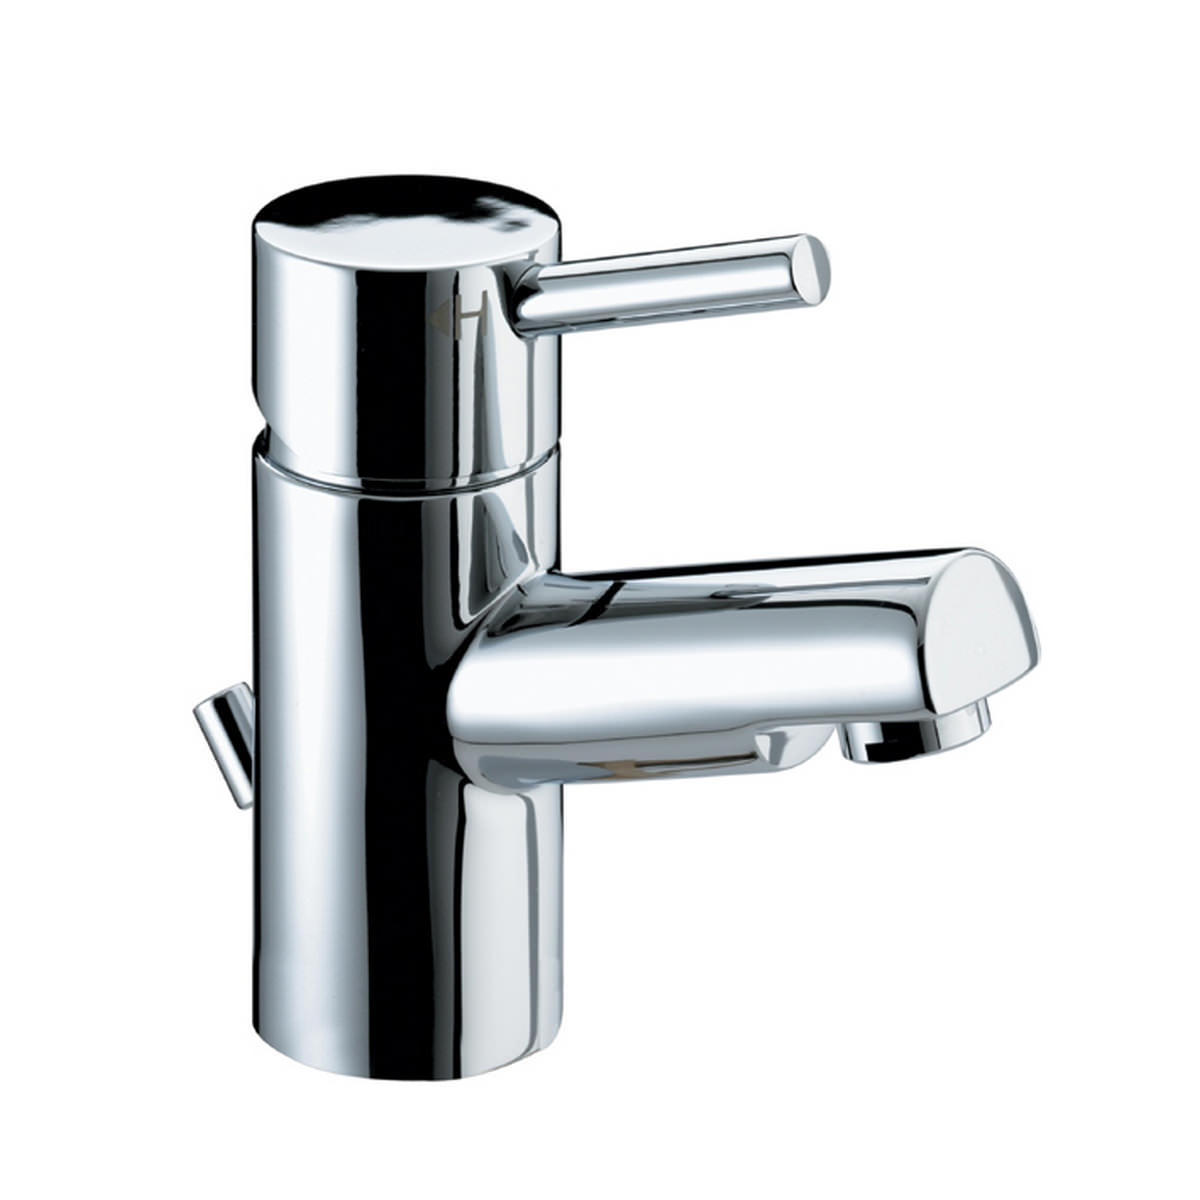 Bristan Prism Kitchen Tap